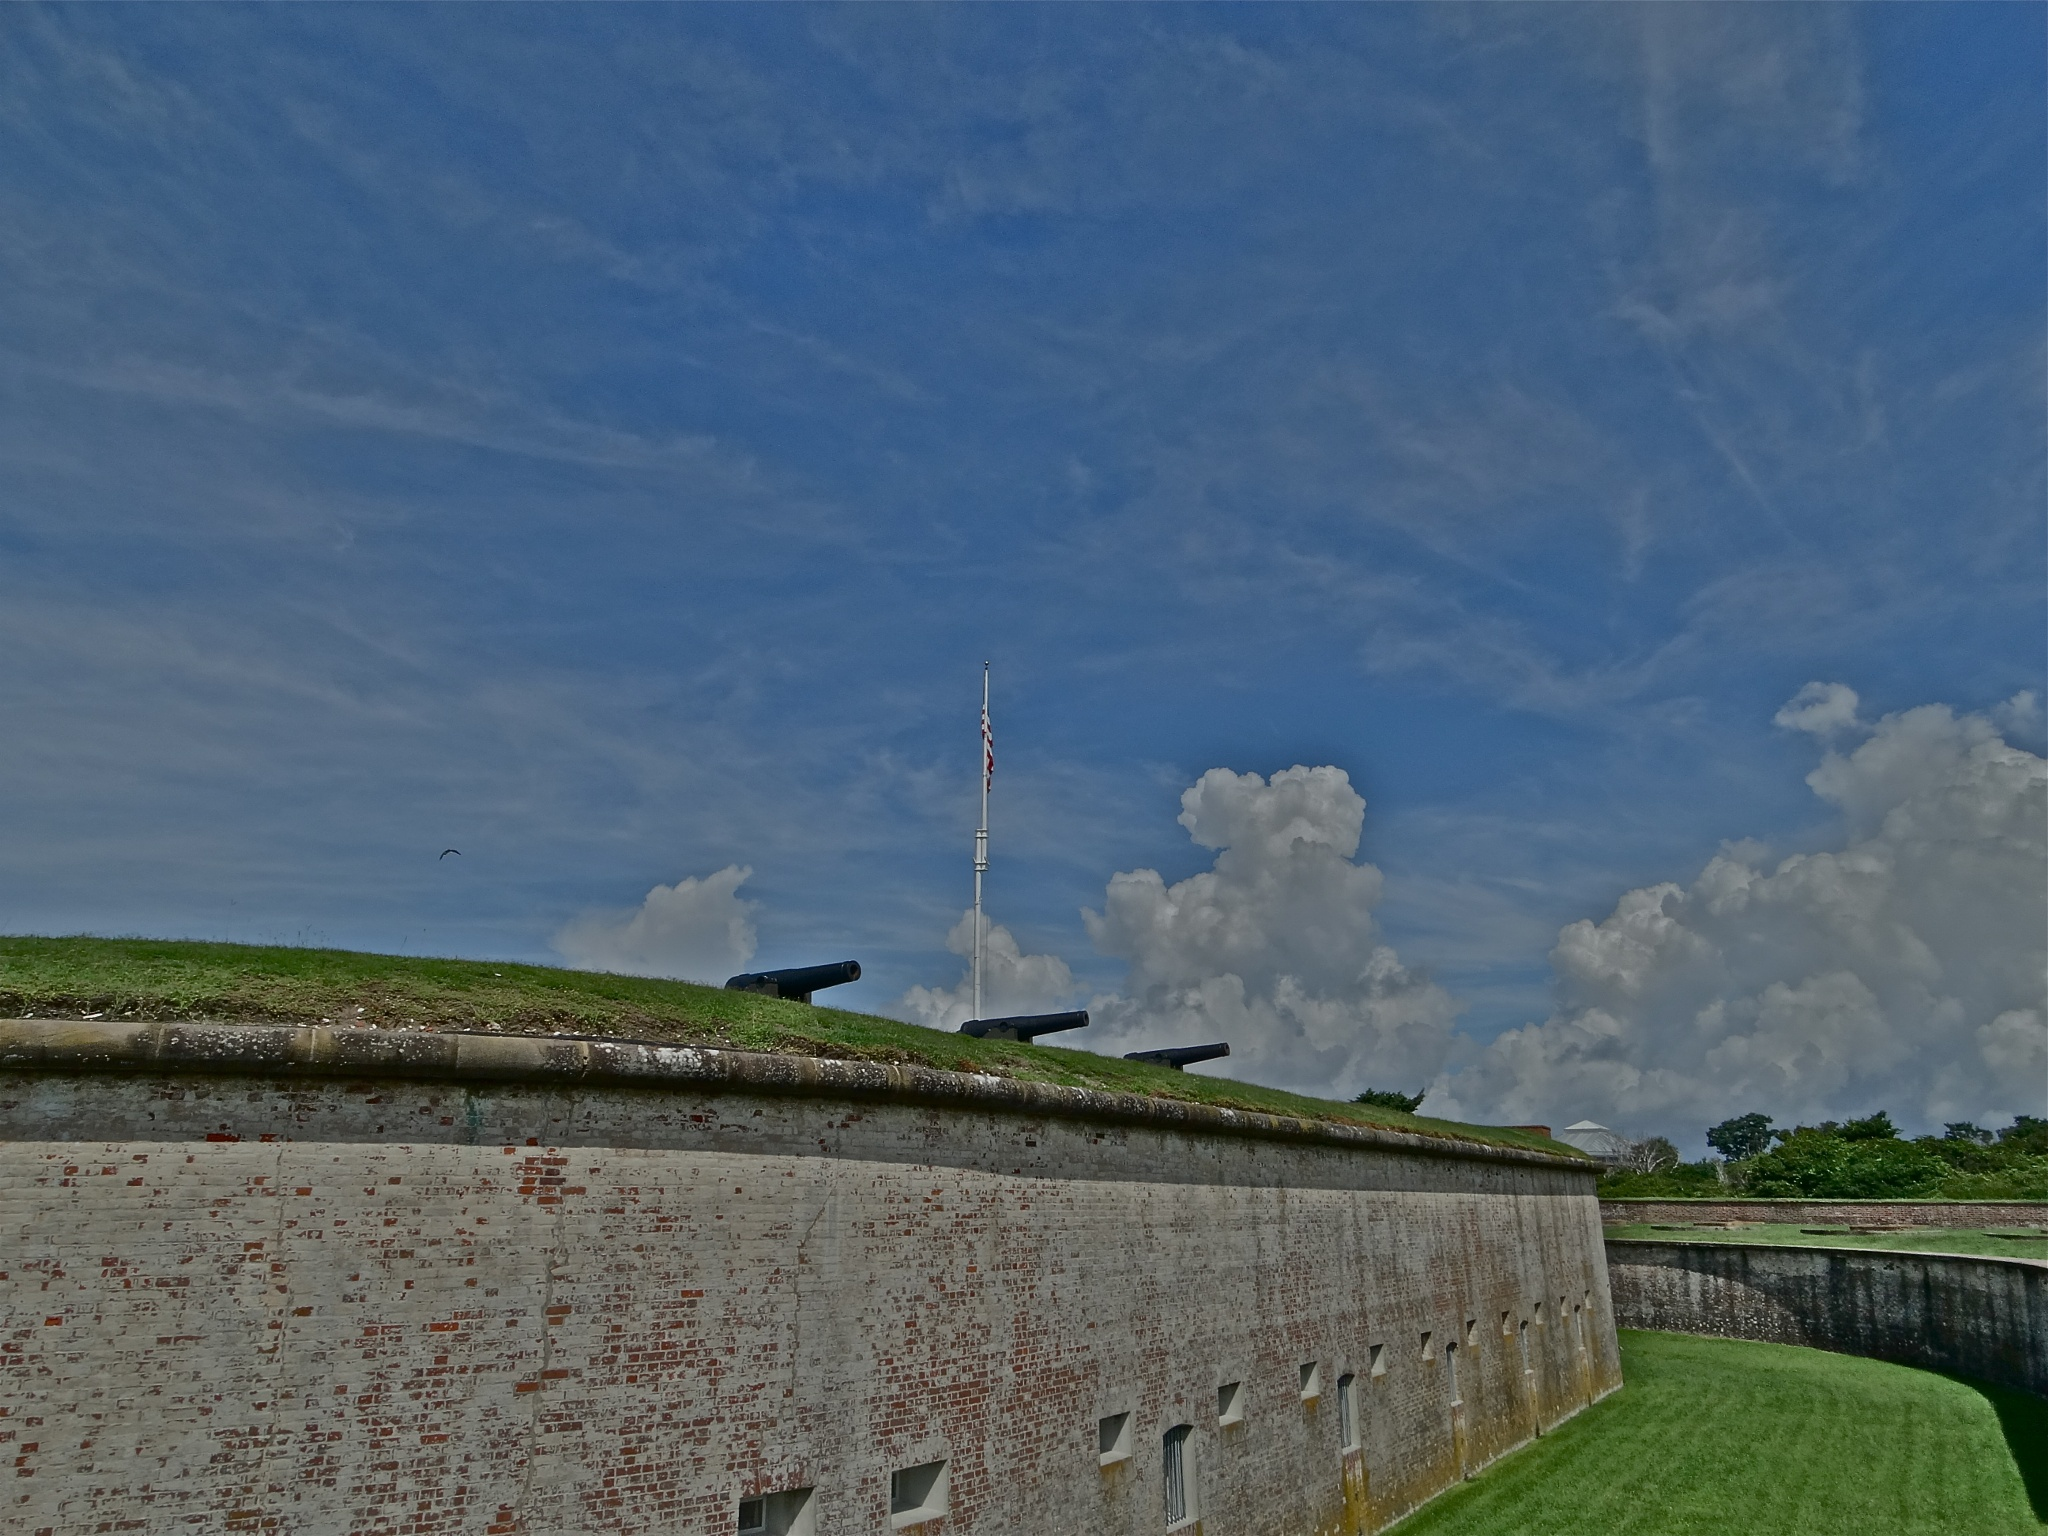 The Canons of Fort Macon by gloria.west.12